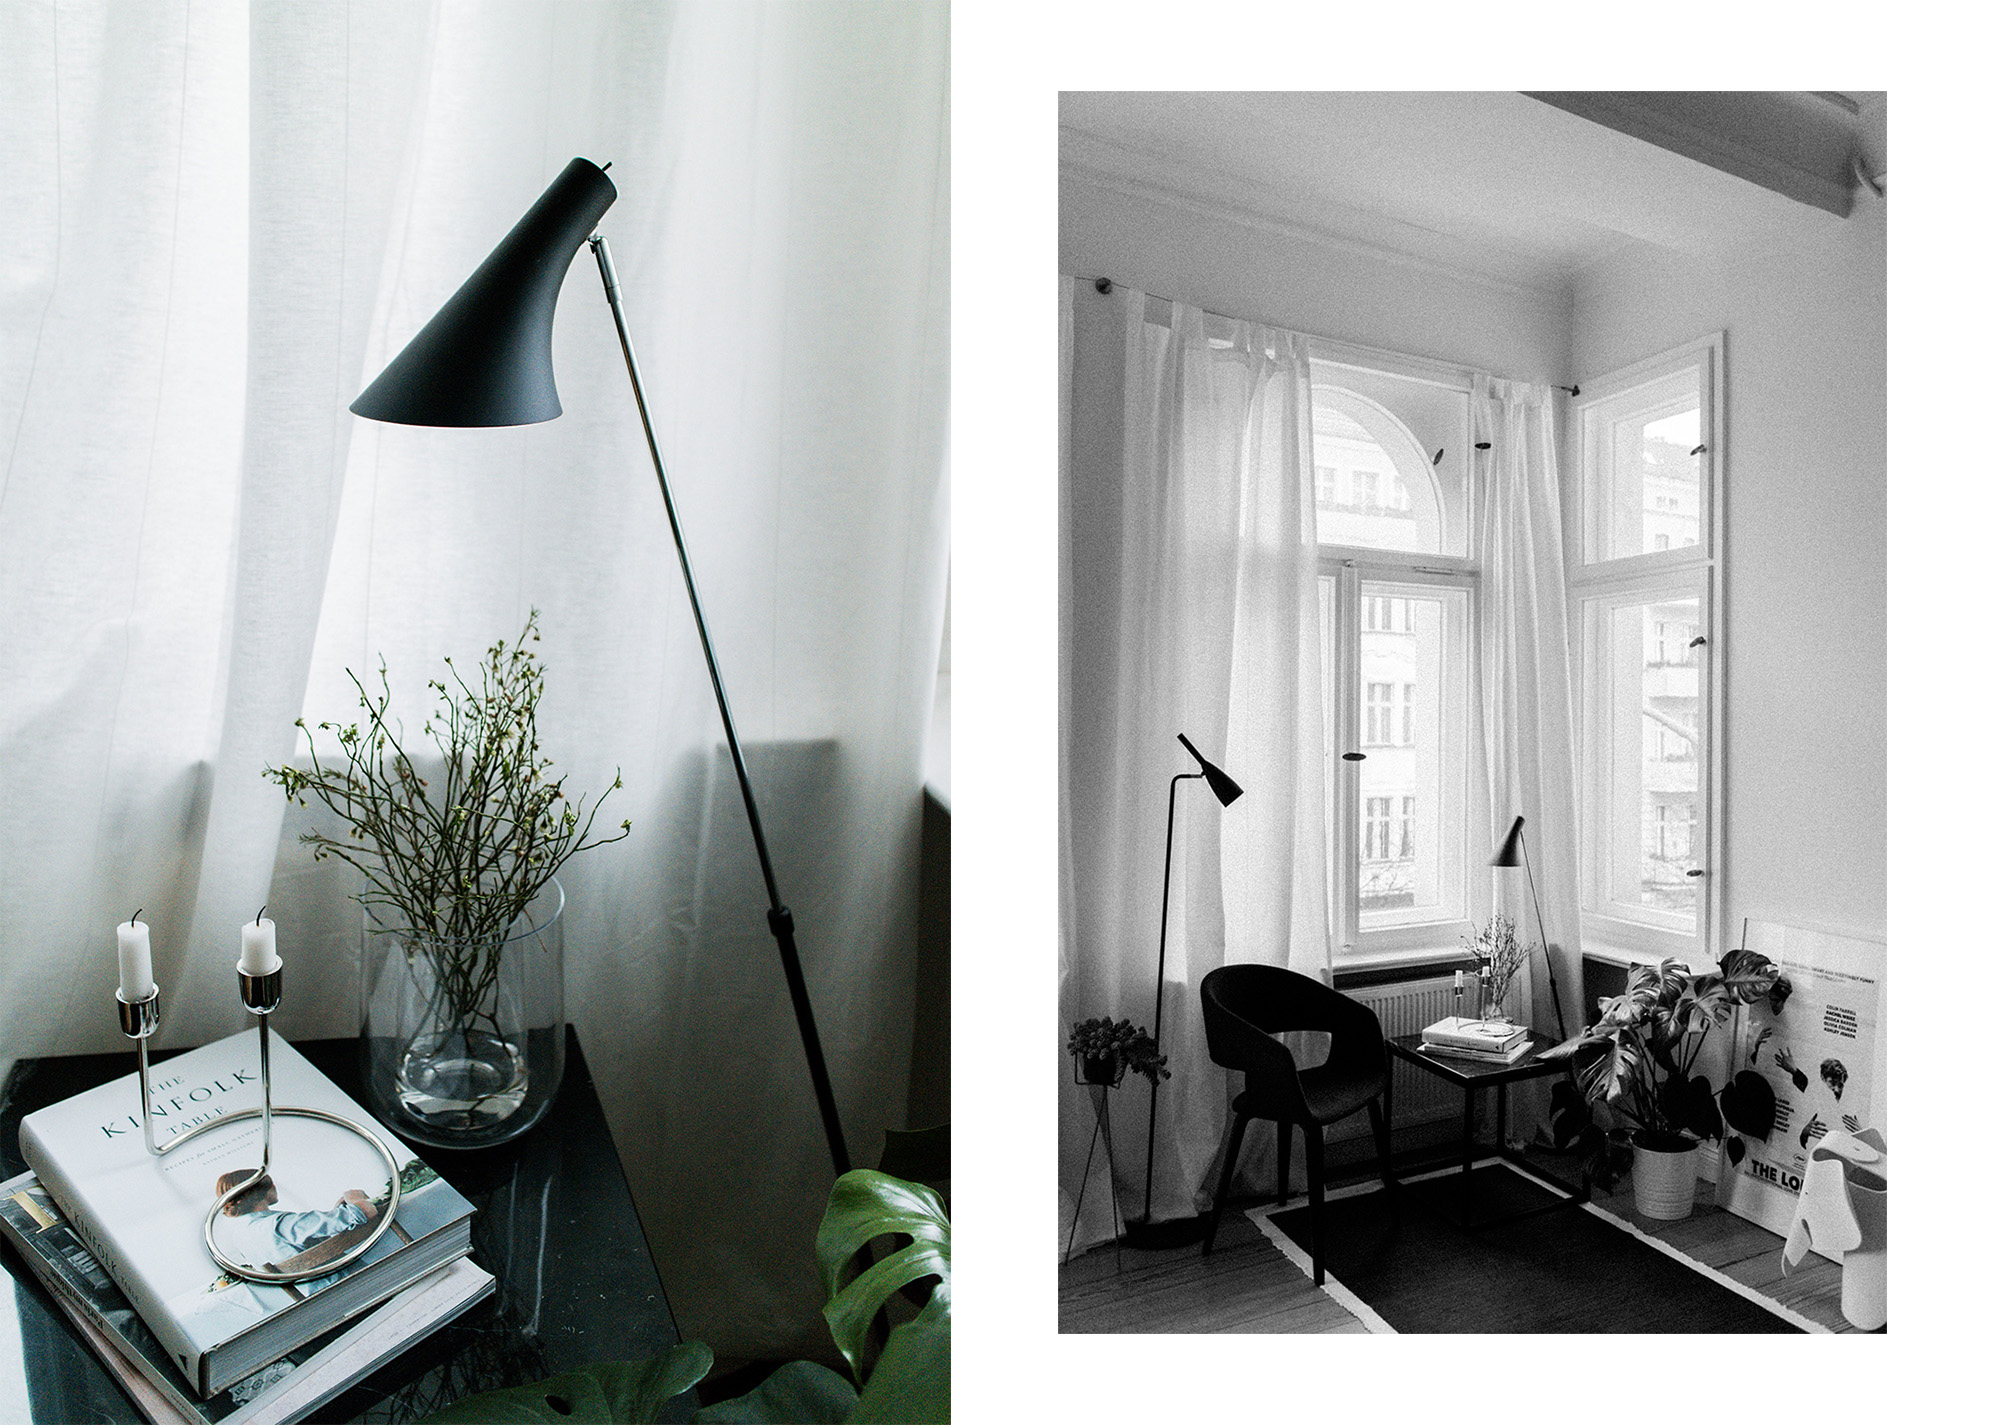 Reading Corner - Berlin Altbau Apartment Interior Inspiration / IheartAlice.com